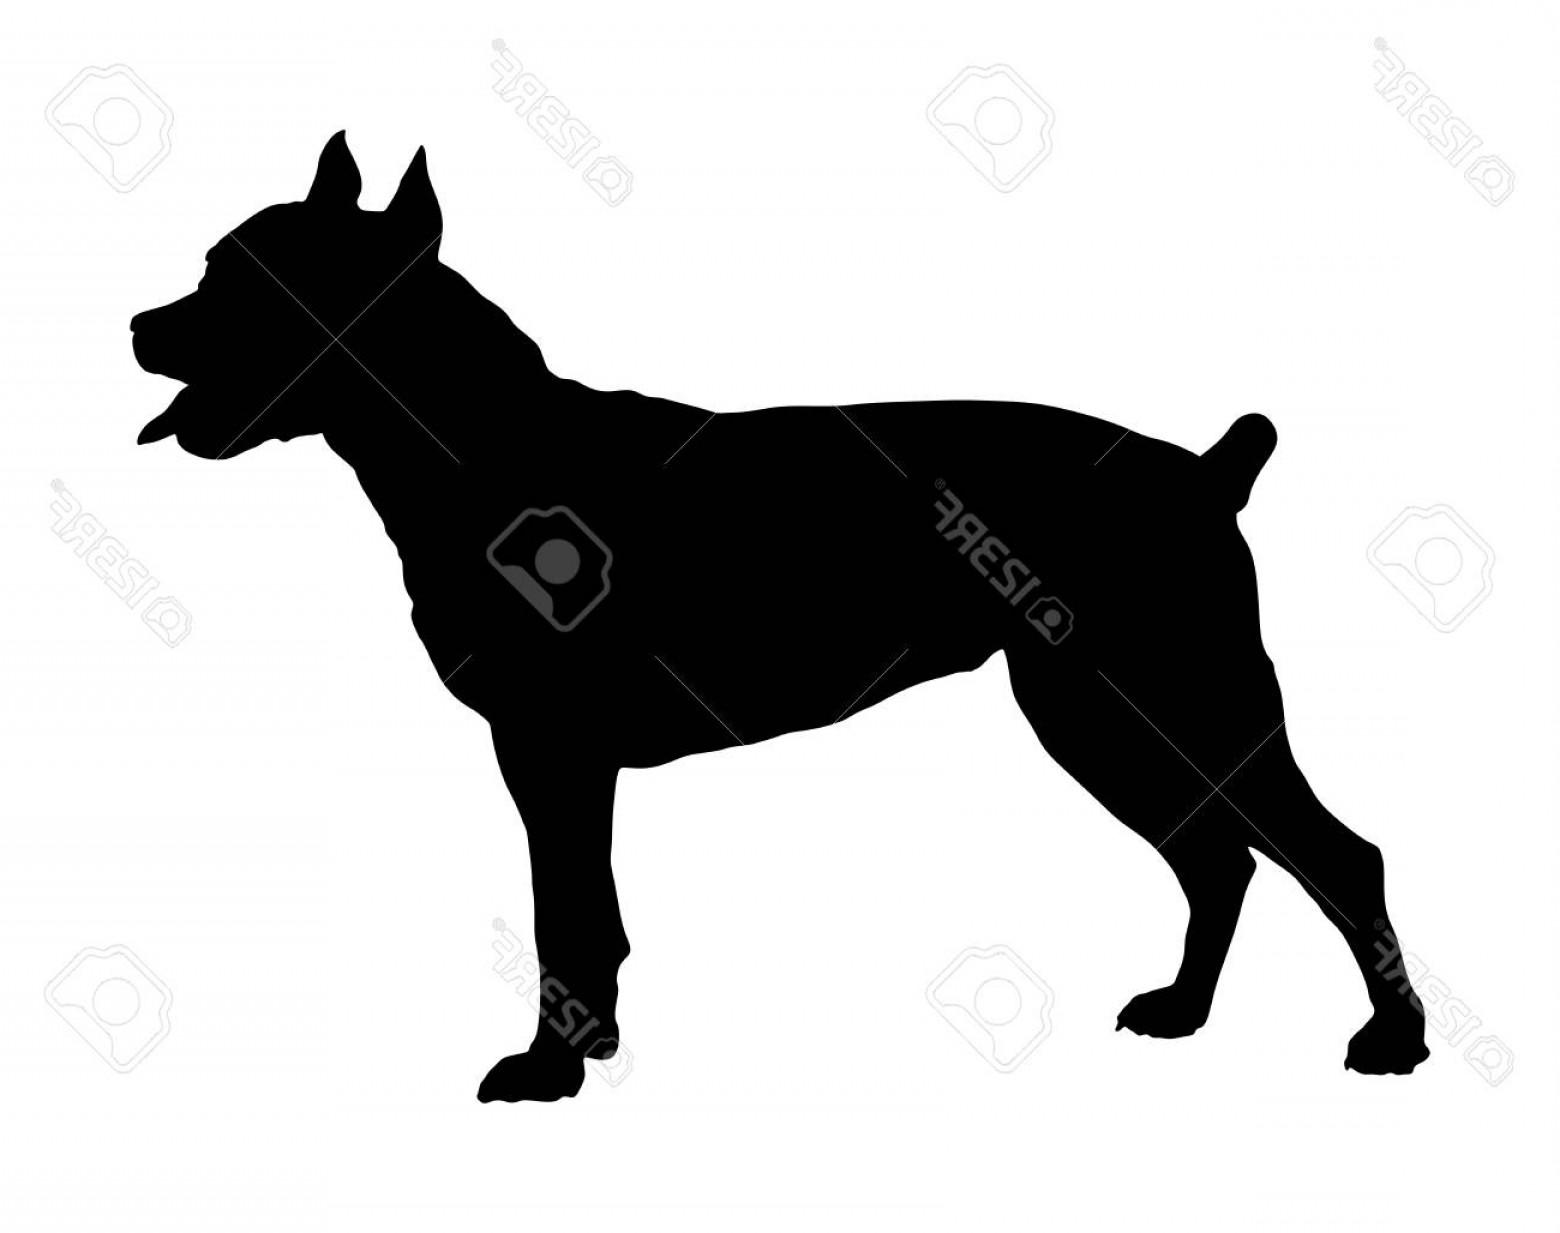 Pit Silhouette Vector: Photostock Vector Dog Portrait Of American Staffordshire Pit Bull Terrier Vector Silhouette Illustration Isolated